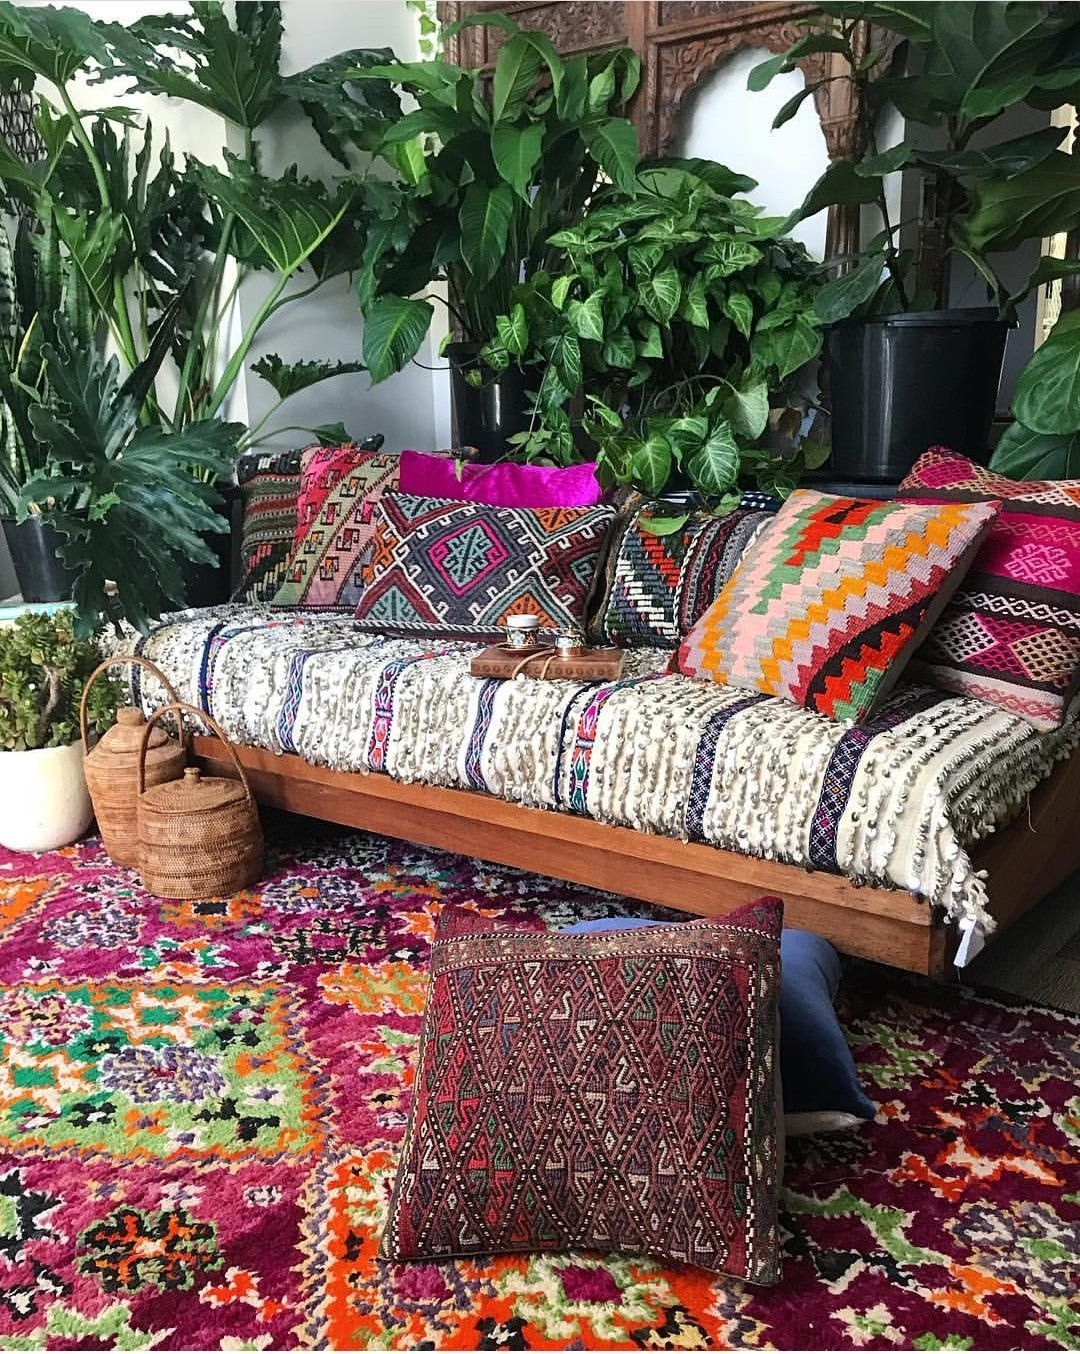 Outdoor daybed outdoor lounge bohemian spaces cozy corners decorating with plants morrocan vibes boho daybed